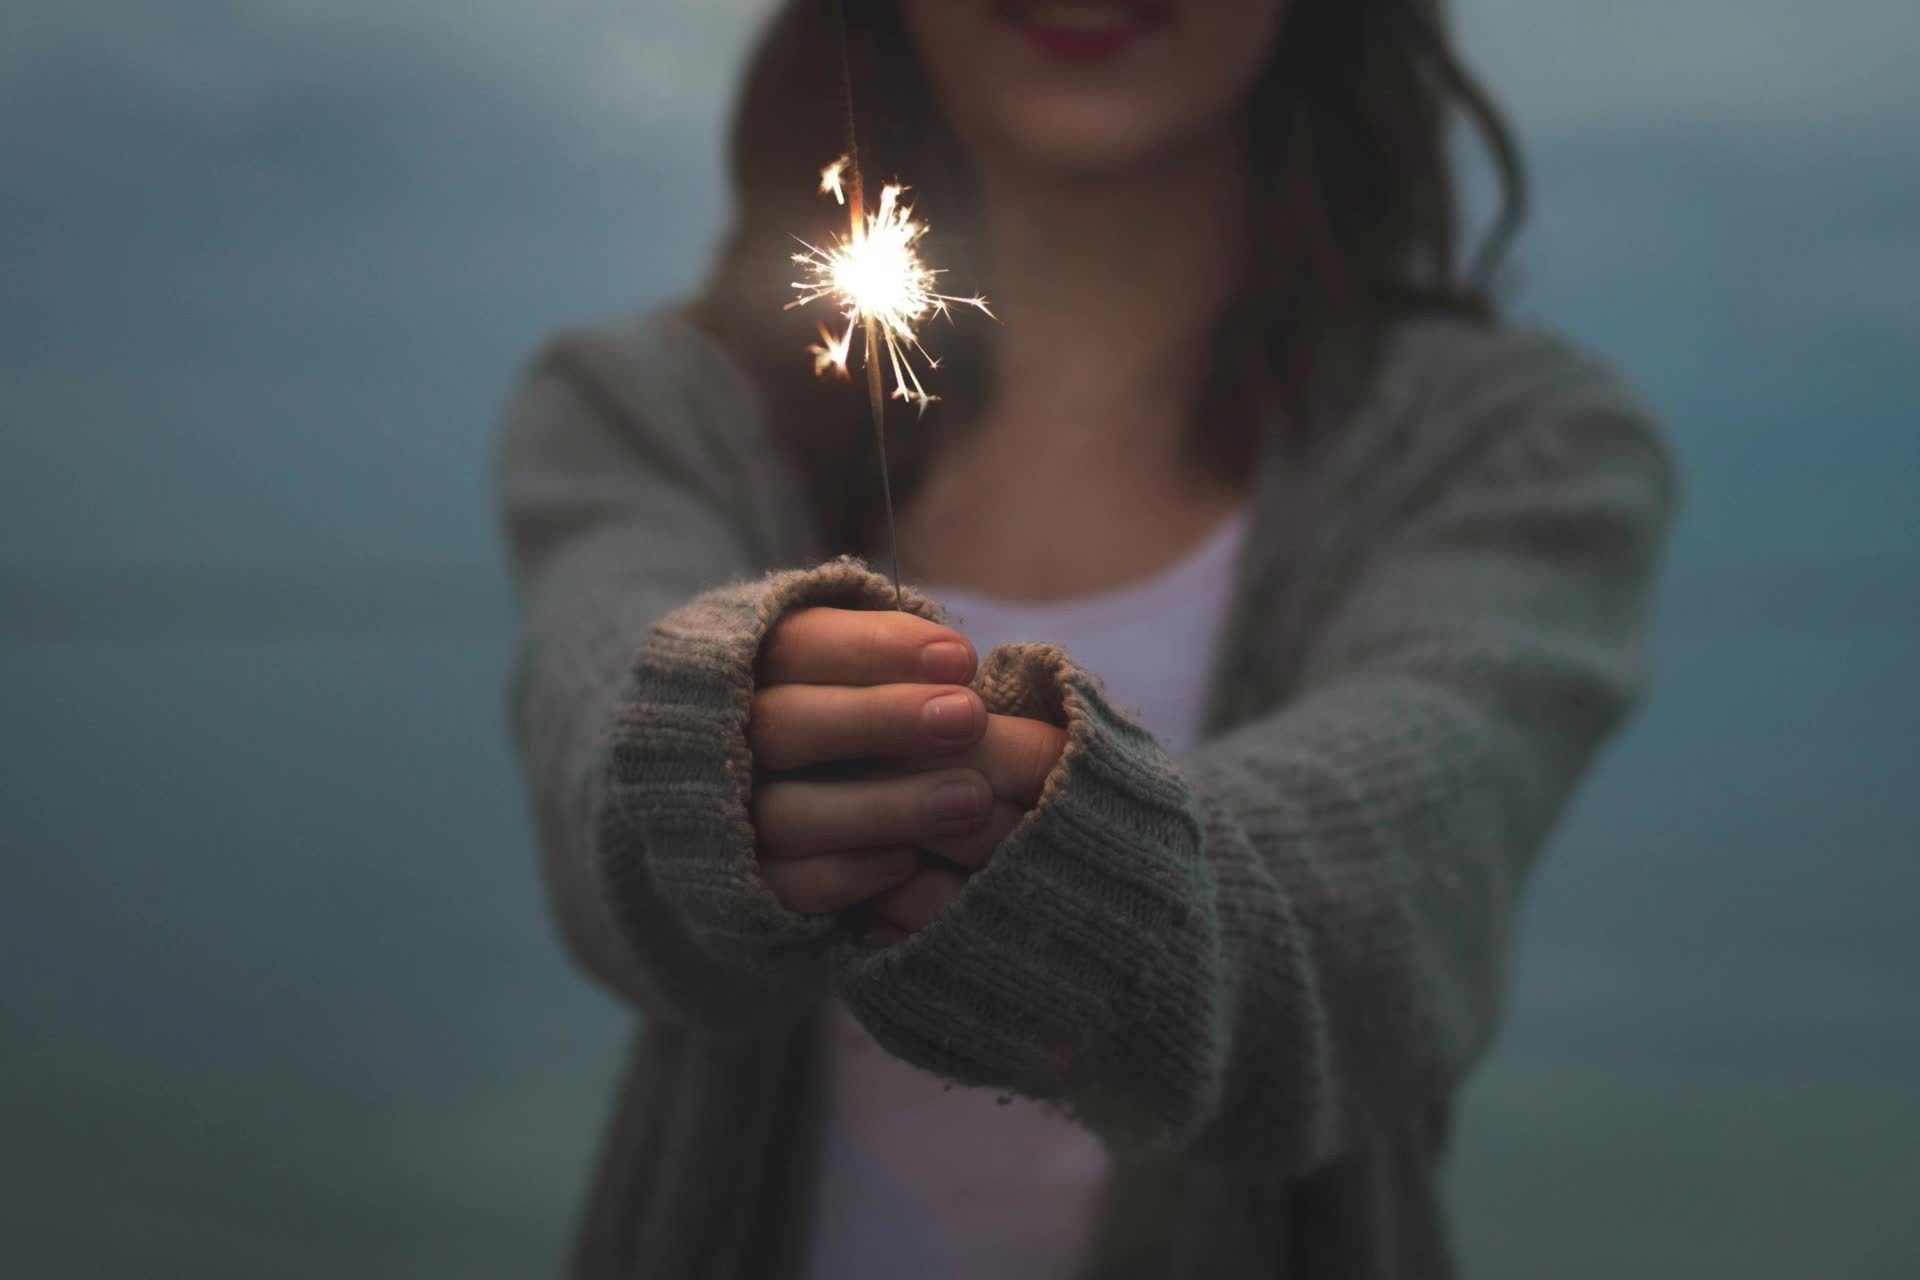 Cinemagraphs, cinemagraphs, [OC] Sparkler Girl (Request fulfilled for /u/oile2011) (reddit) GIFs